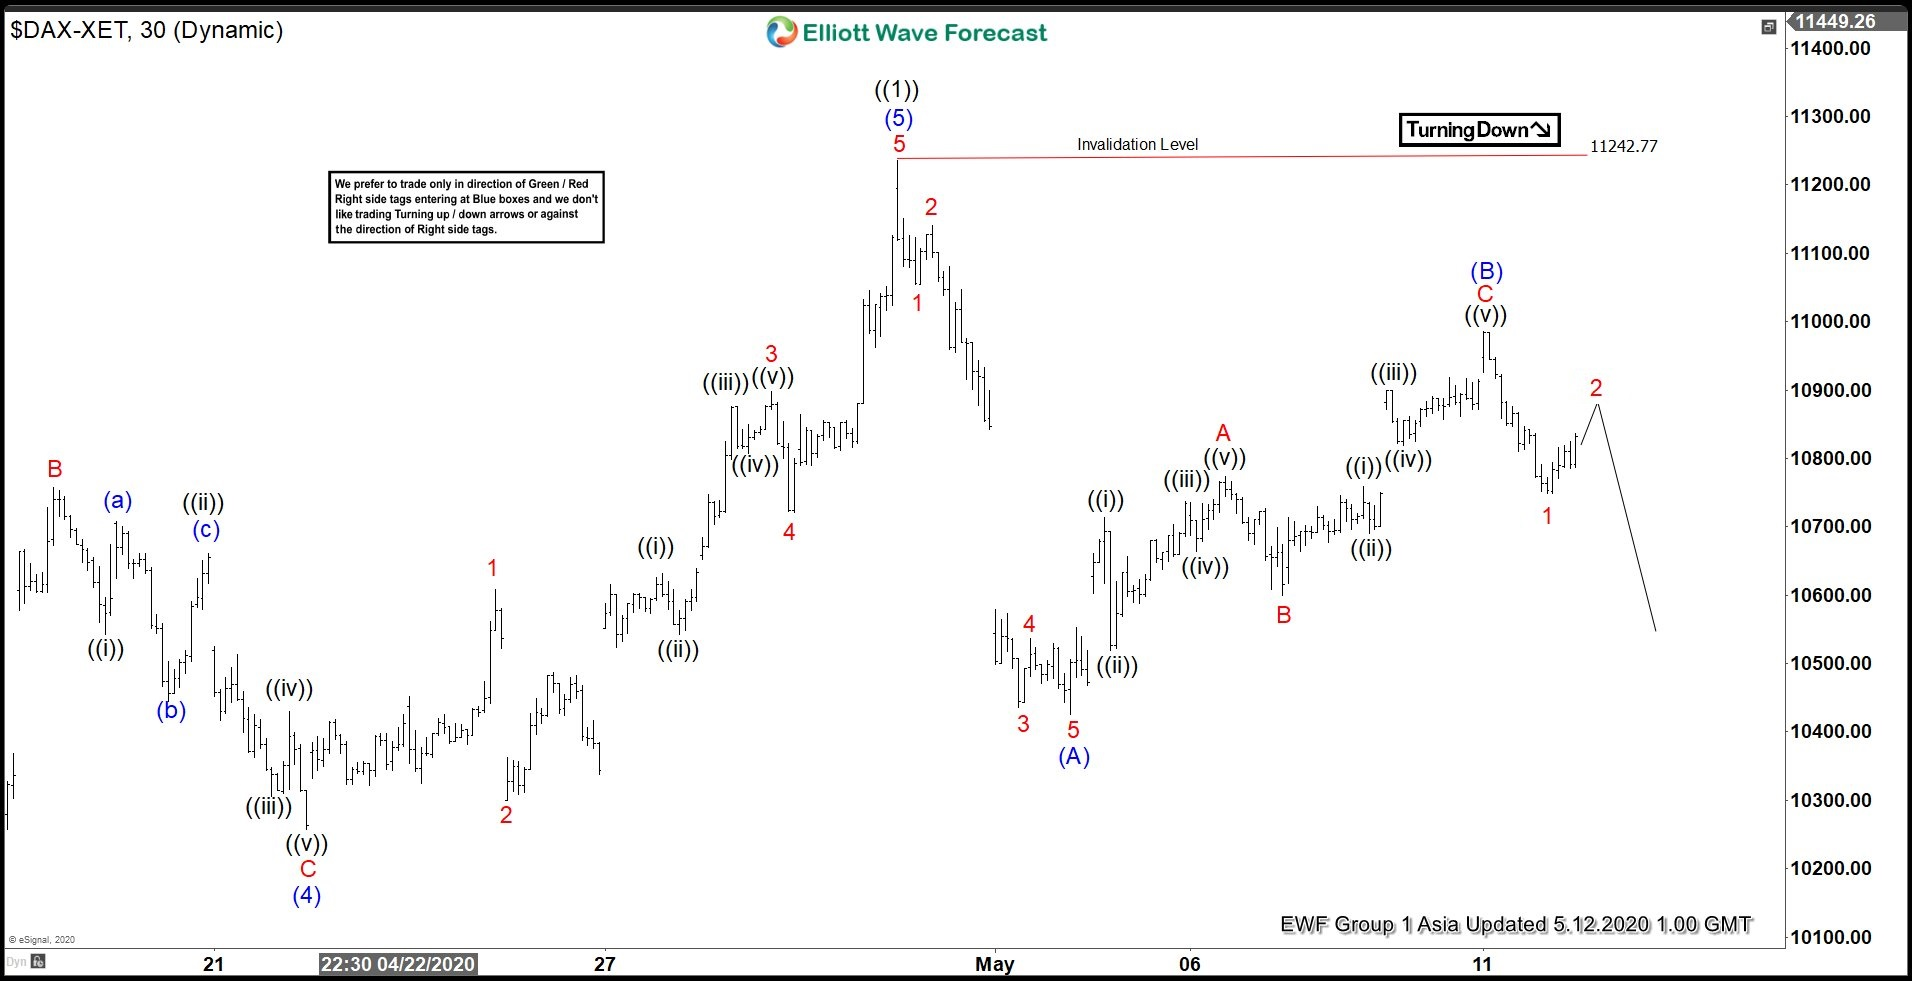 Elliott Wave View: DAX Ended Correction and Turning Lower